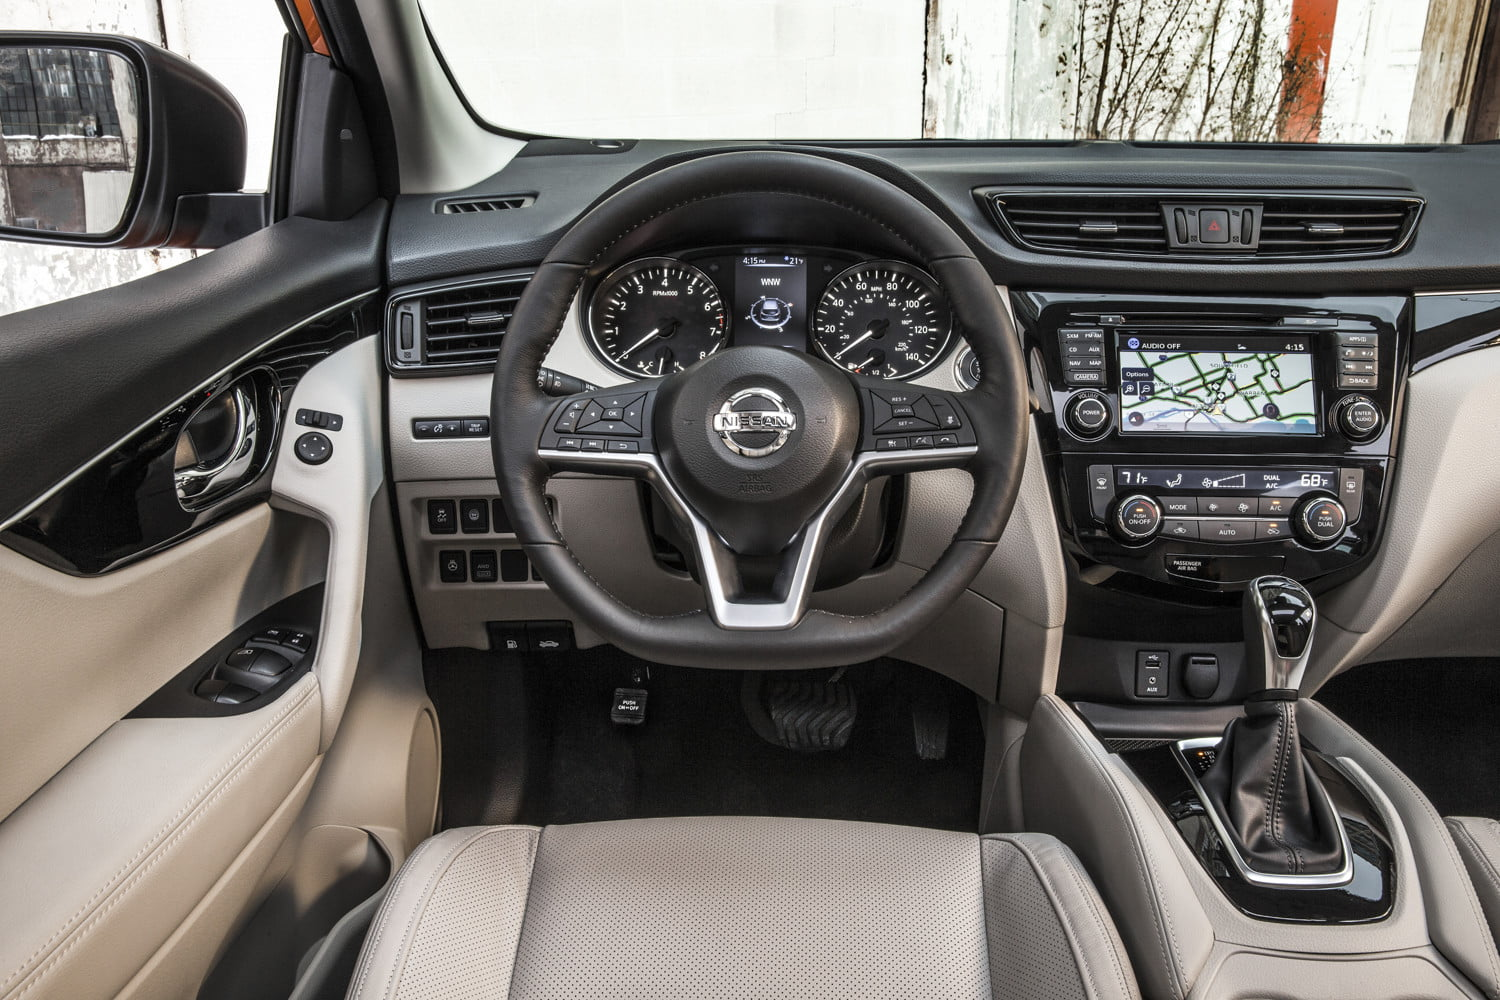 2017 Nissan Rogue Sport Our First Impressions Digital Trends